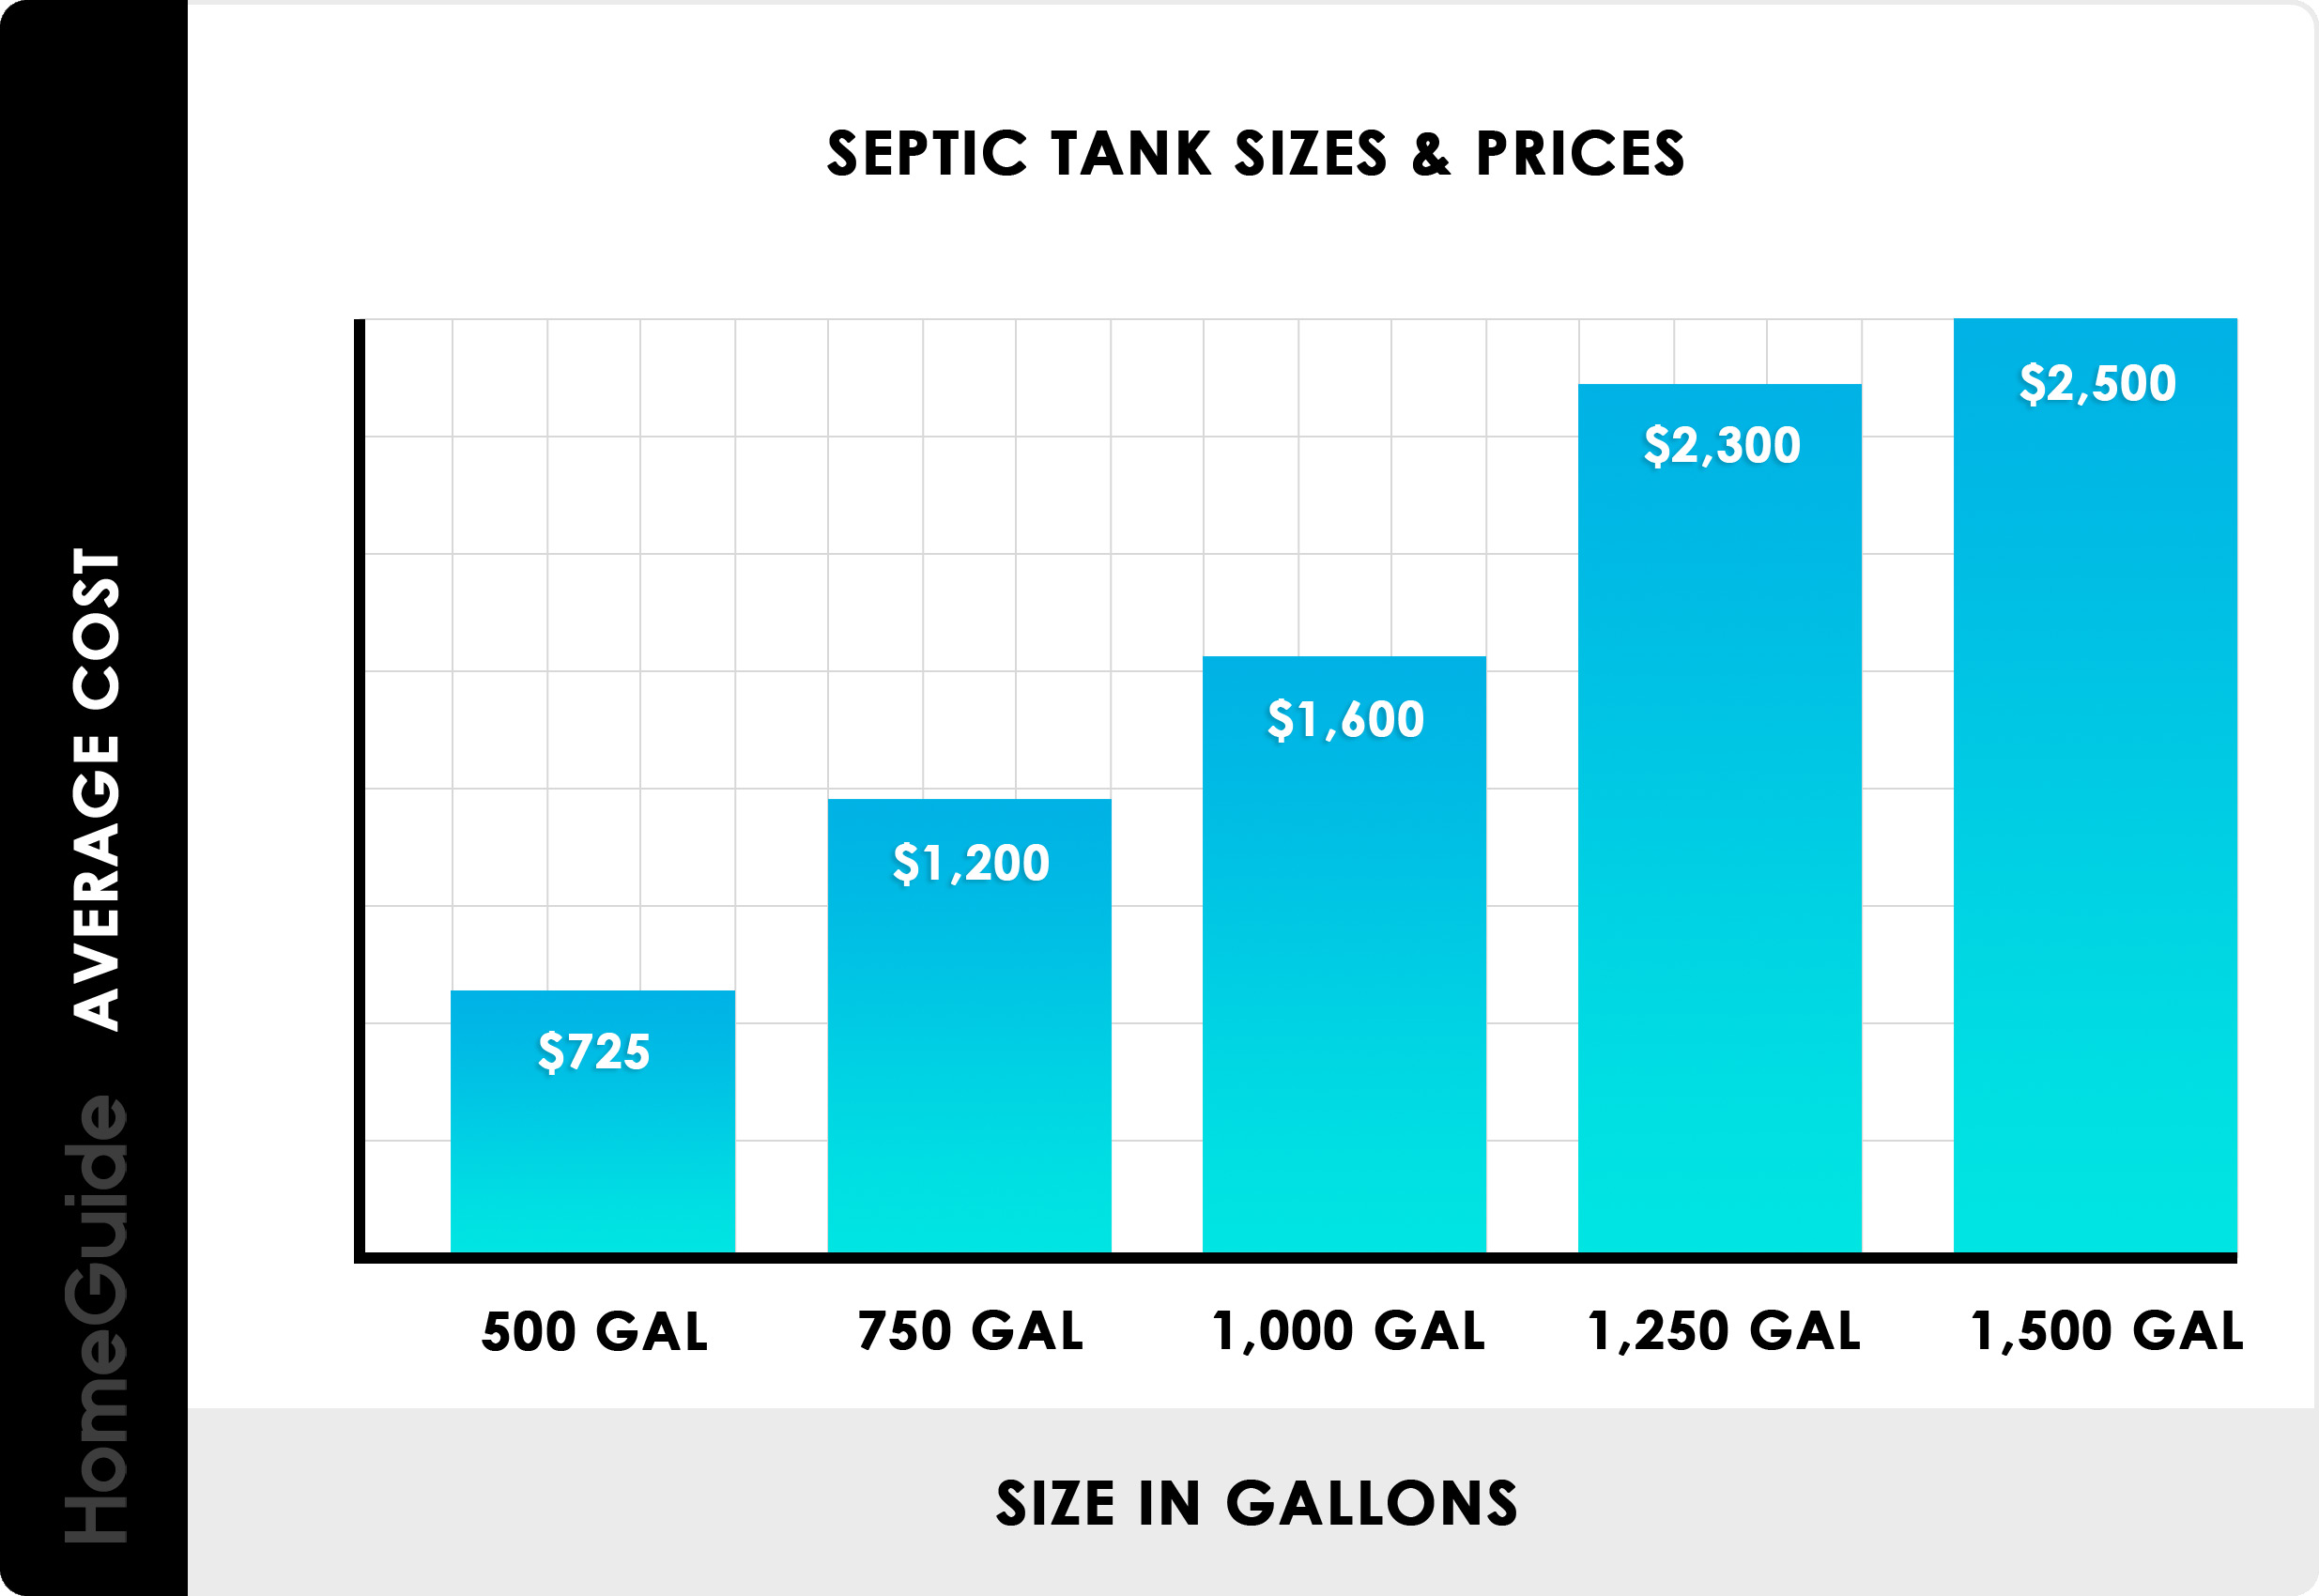 2021 Septic Tank System Installation Costs & Replacement